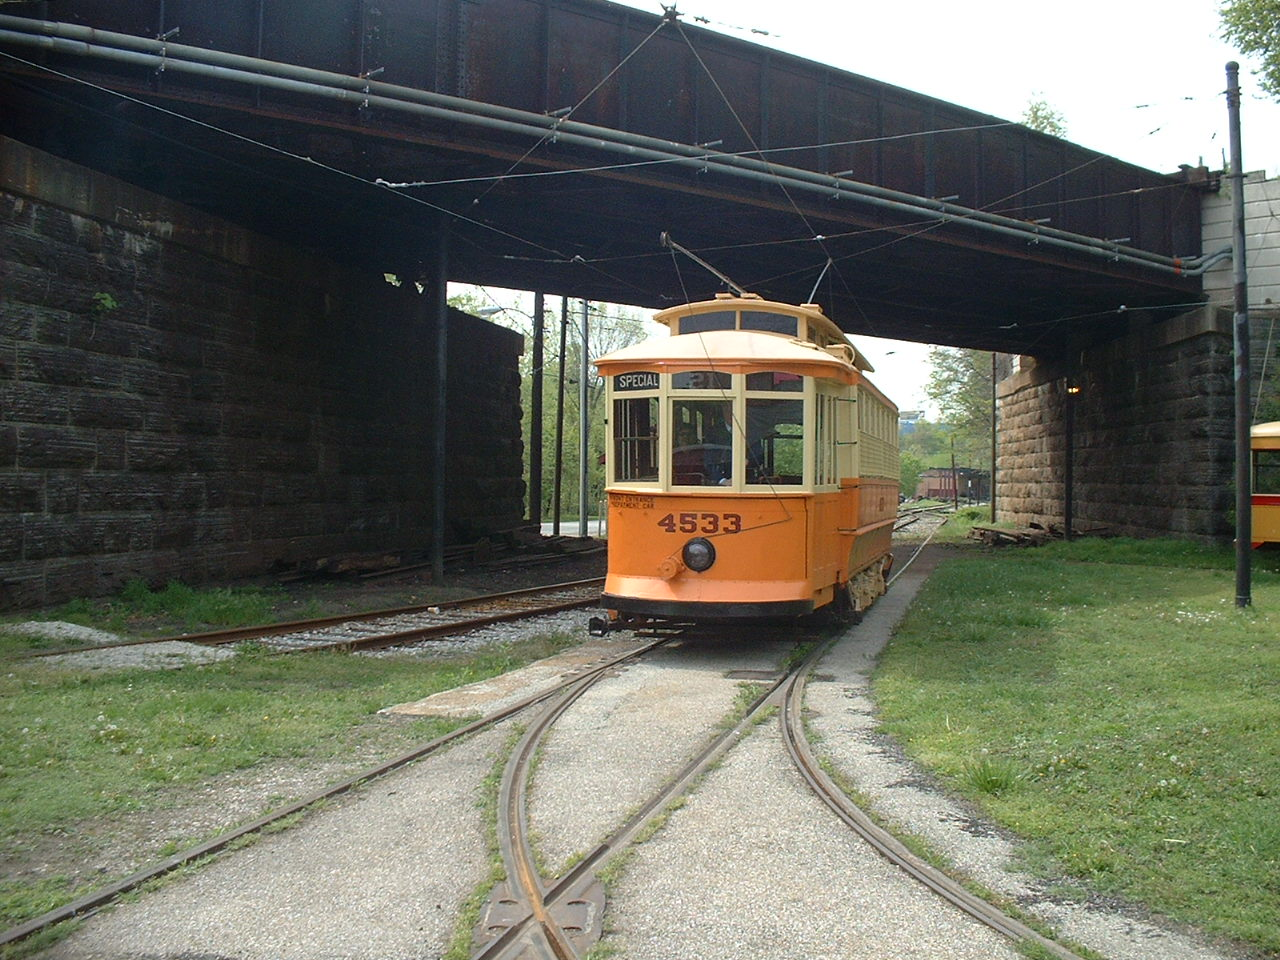 (296k, 1280x960)<br><b>Country:</b> United States<br><b>City:</b> Baltimore, MD<br><b>System:</b> Baltimore Streetcar Museum <br><b>Car:</b>  4533 <br><b>Photo by:</b> Dan Lawrence<br><b>Date:</b> 4/27/2002<br><b>Viewed (this week/total):</b> 0 / 2009